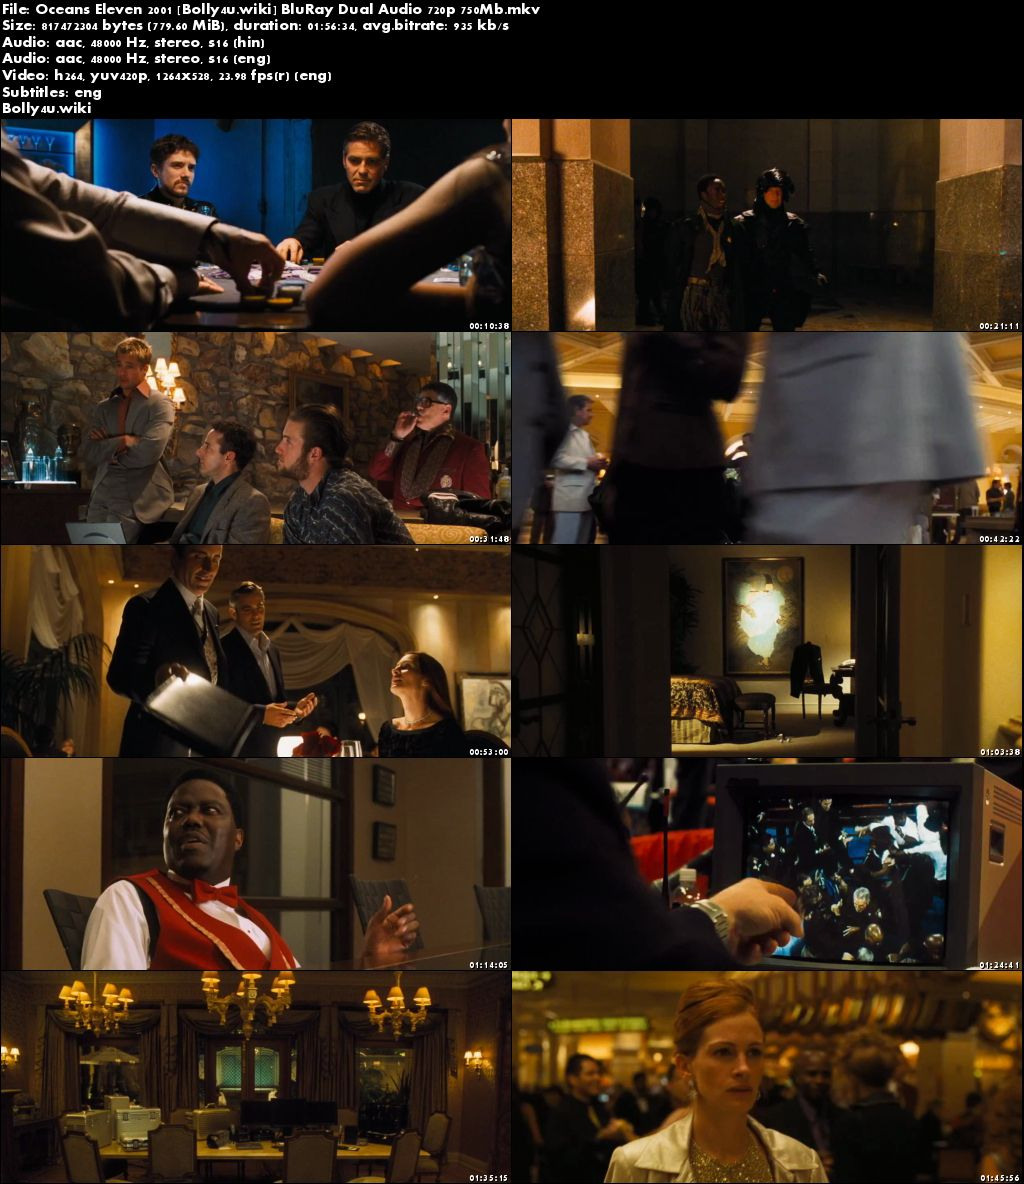 Oceans Eleven 2001 BluRay 750Mb Hindi Dual Audio 720p Download